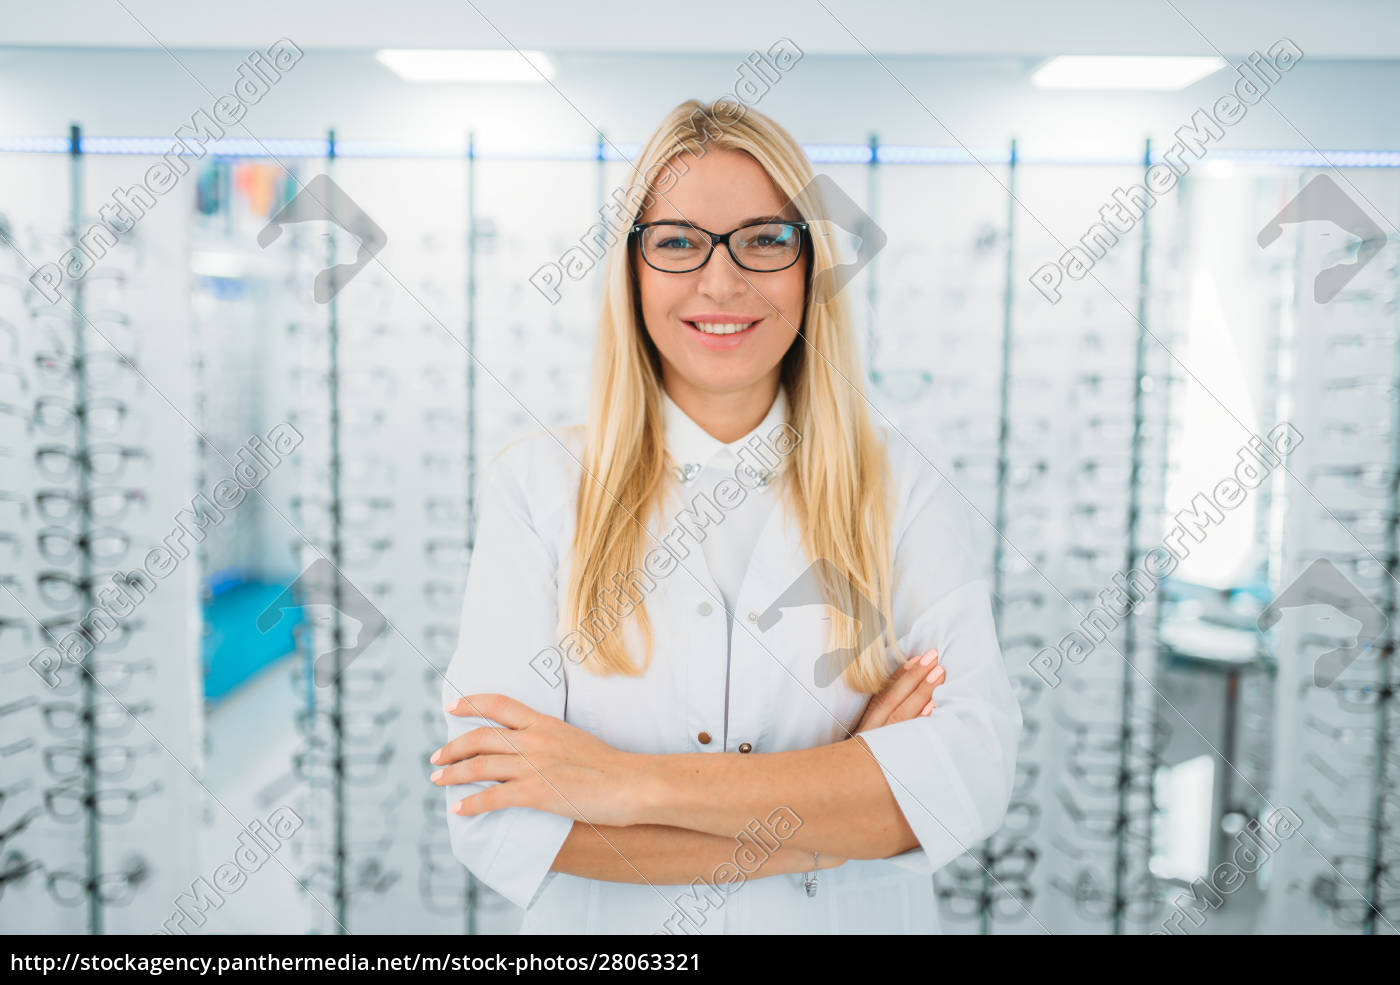 female, optometrist, against, showcase, with, glasses - 28063321